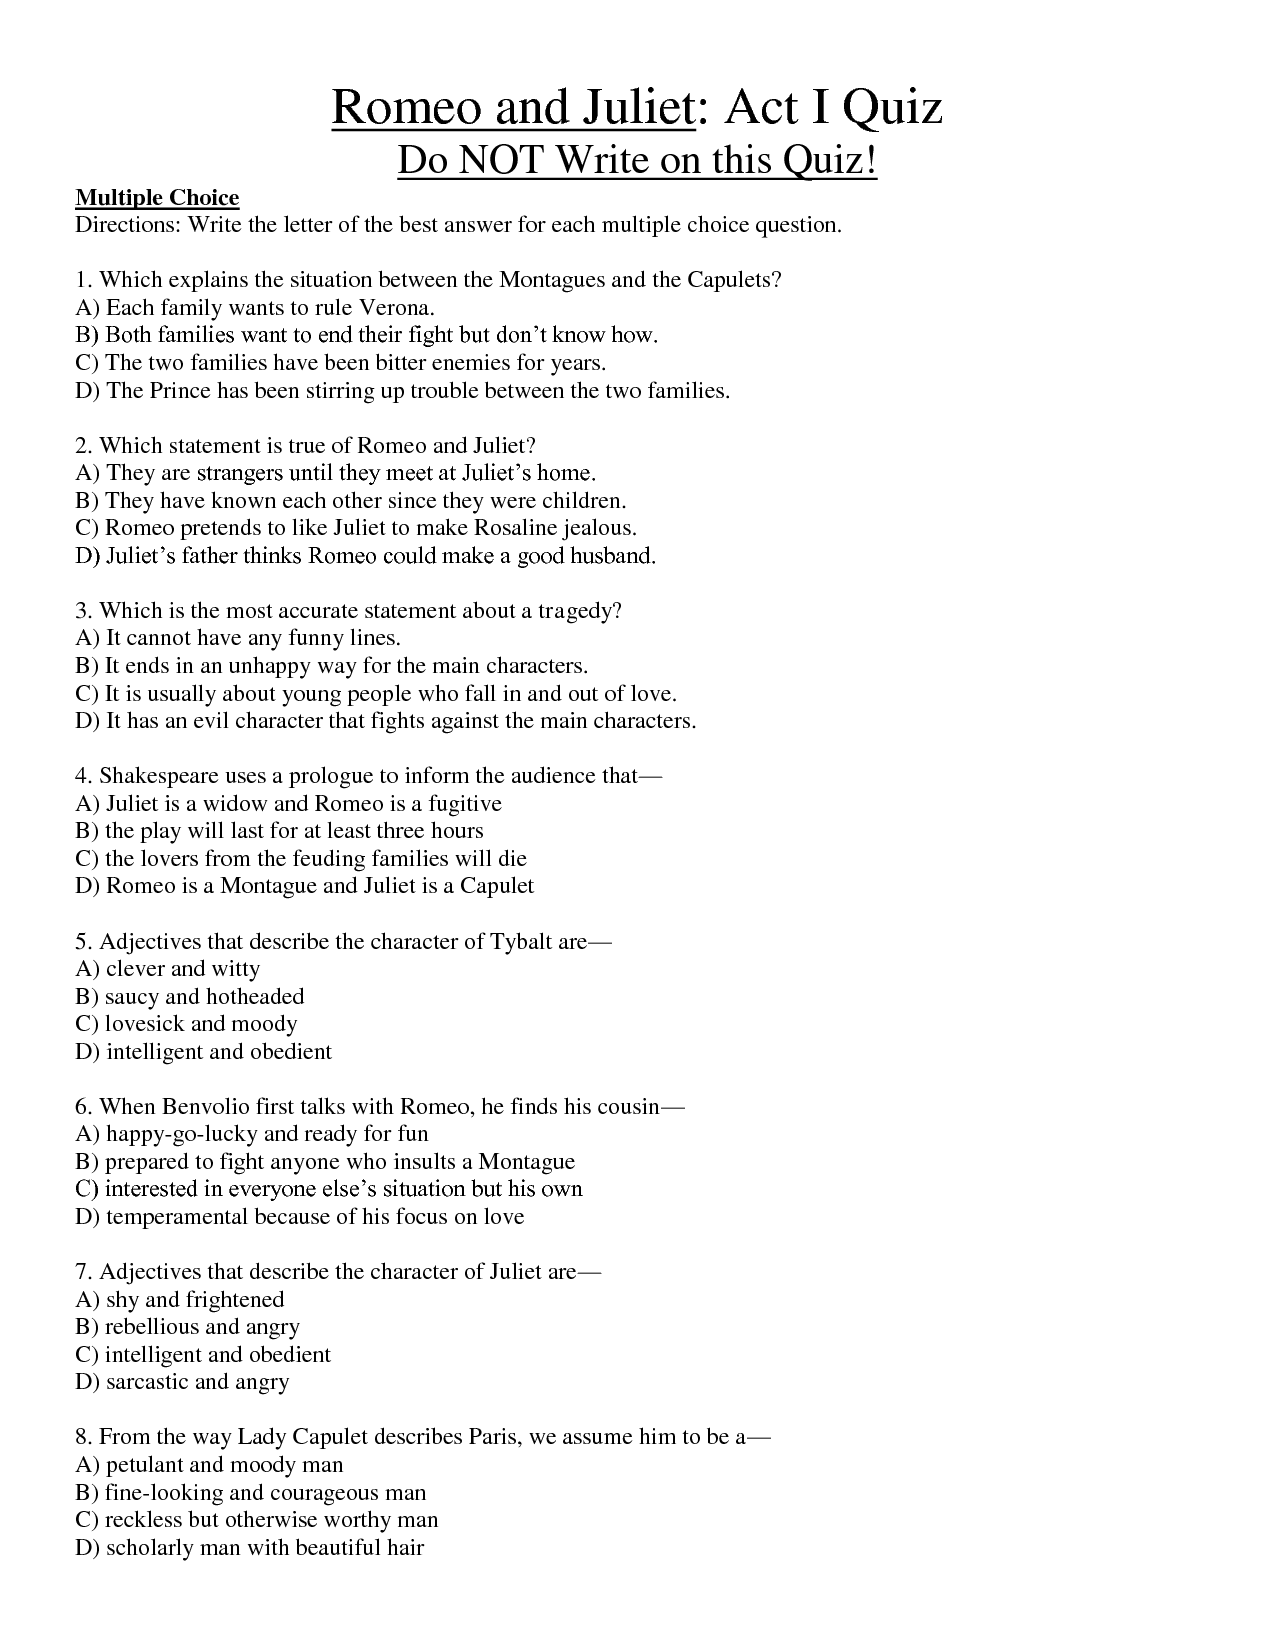 romeo and juliet act quiz freshmen texts and materials romeo and juliet act 1 quiz